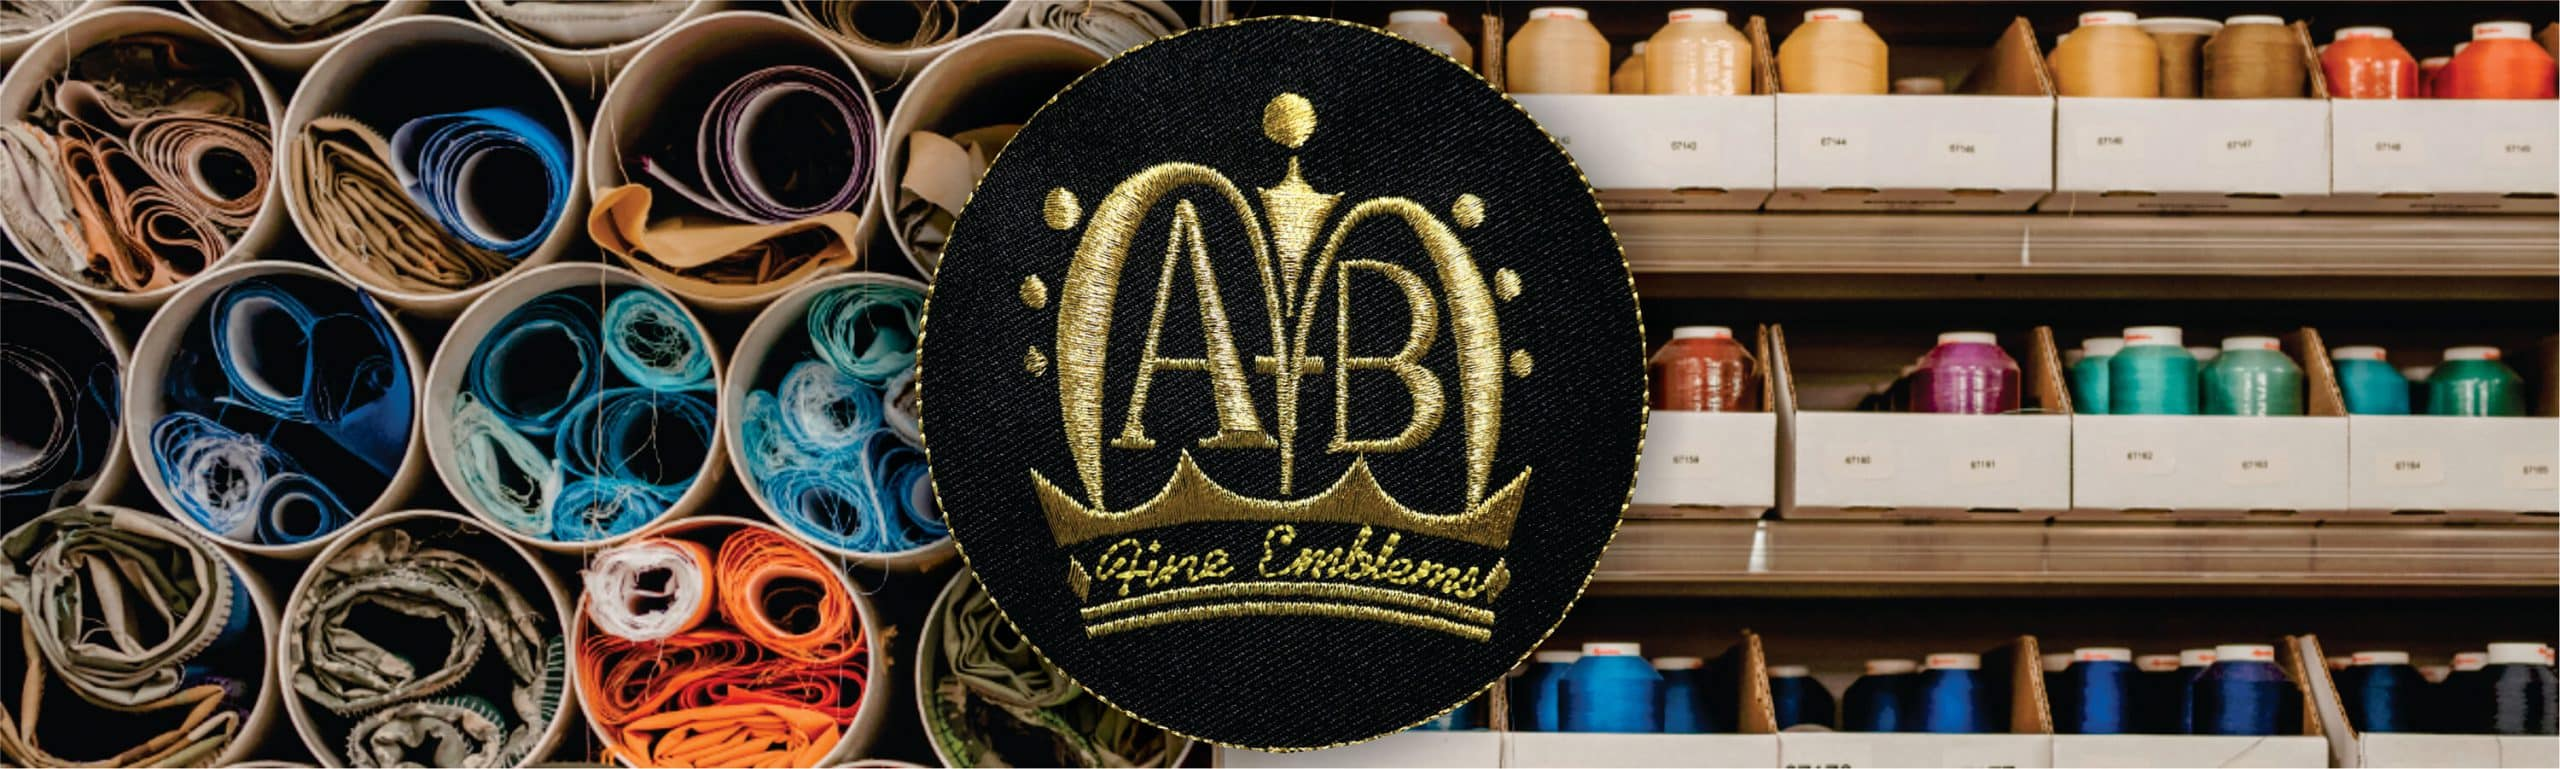 Custom embroidered patches from A-B Emblem showing many styles, colors, sizes and techniques.